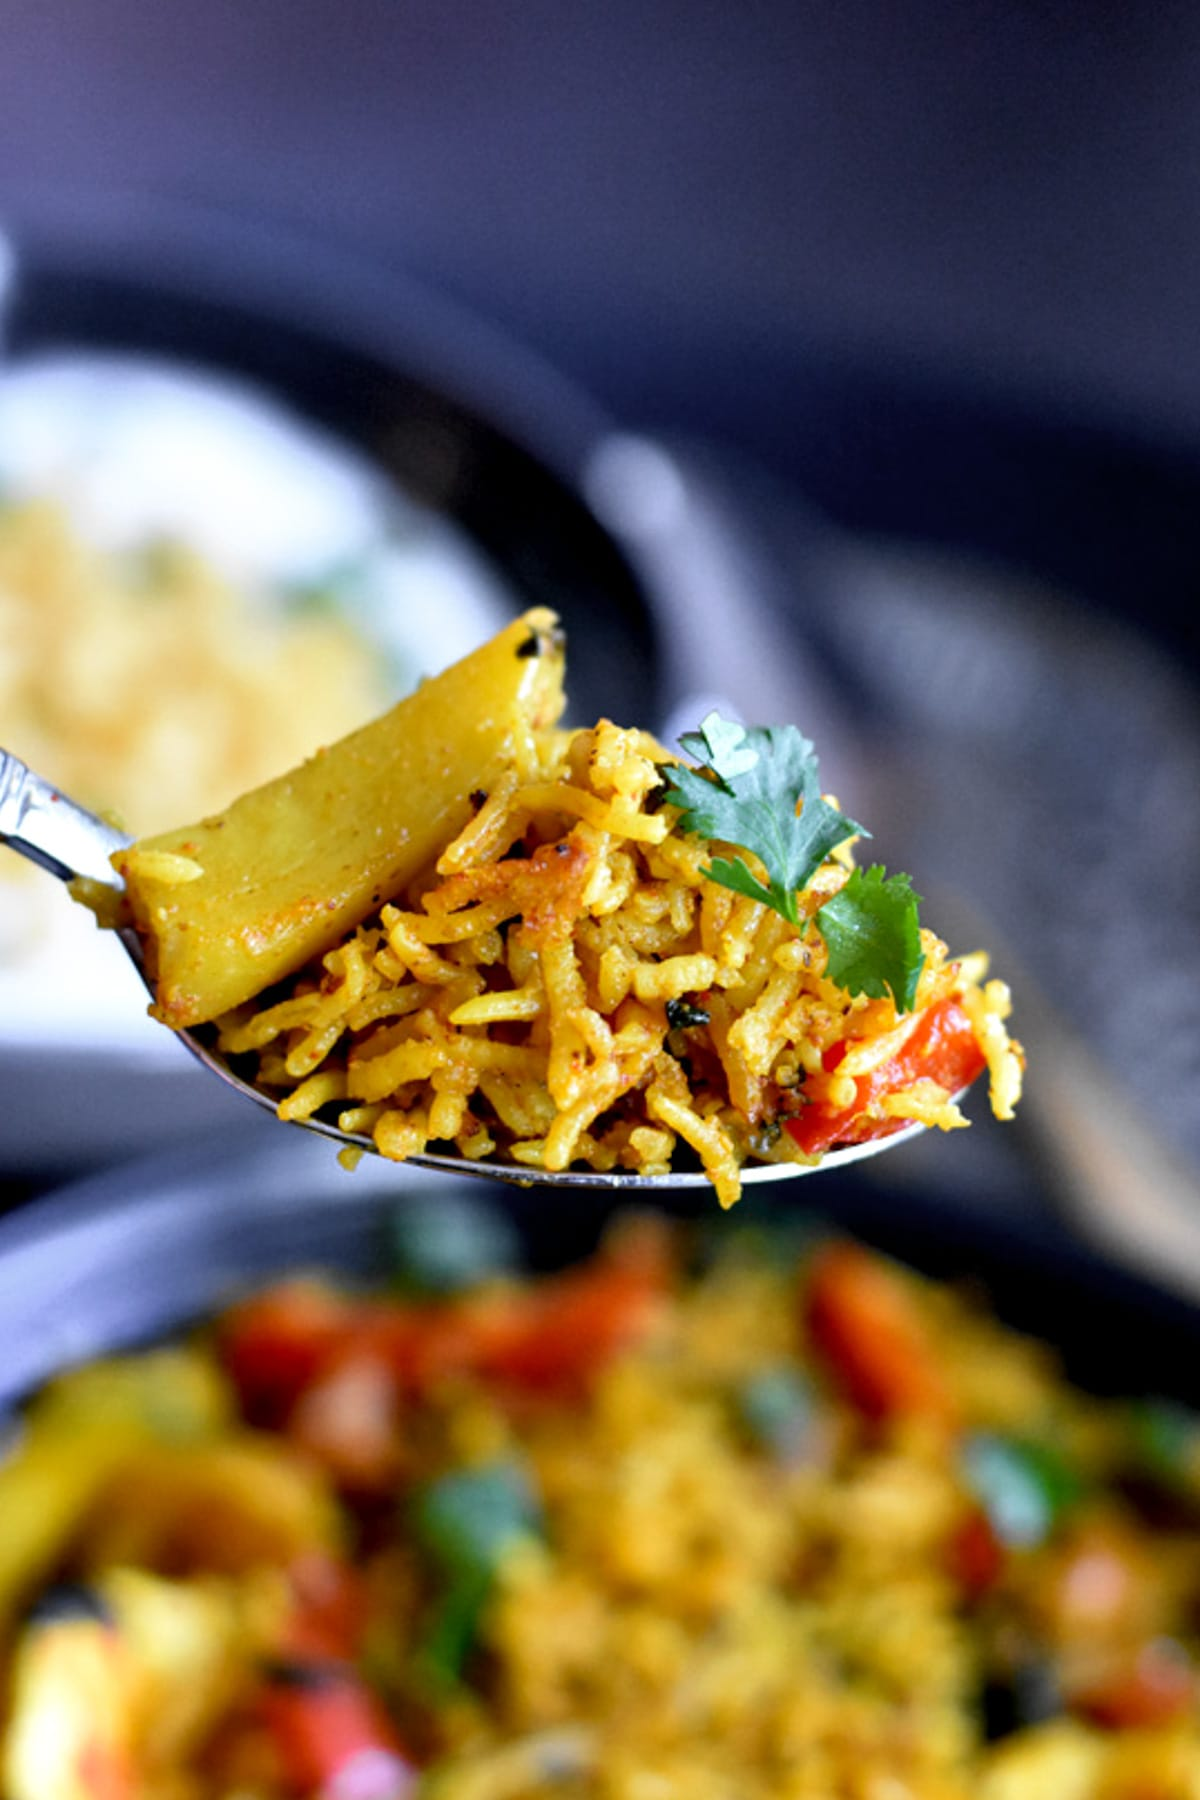 A spoon full of Indian Vegetable Biryani